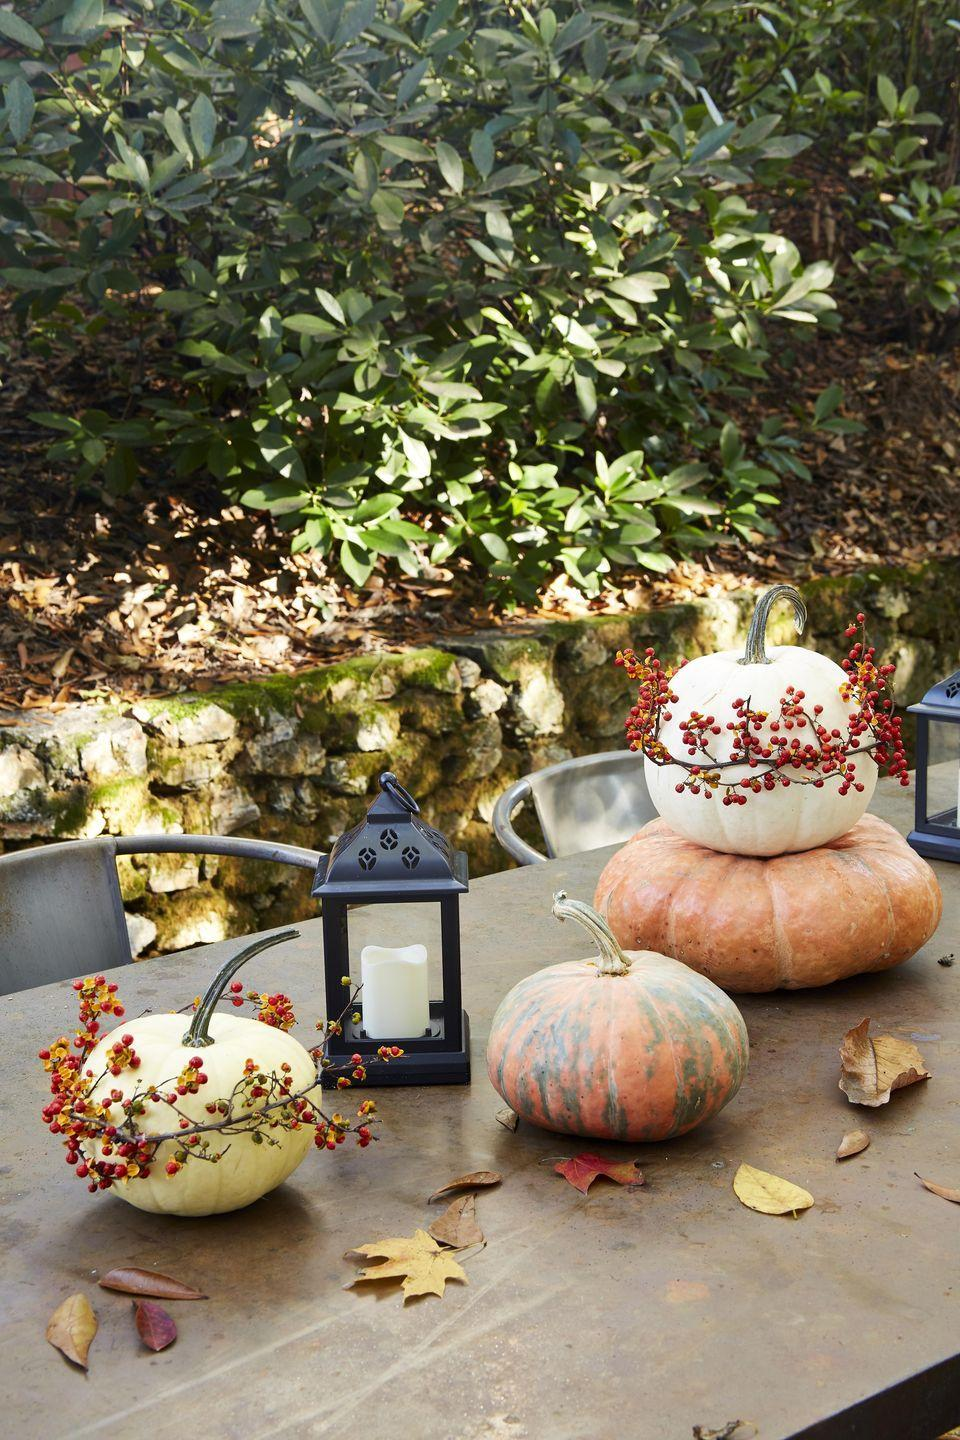 <p>This simple craft, which is perfect for decorating your fall table or front porch, only takes three supplies and just a few minutes to make. If you can't find bittersweet vine, try using grapevine and attaching berries with hot glue.<strong> <br></strong></p><p><strong>Make the pumpkins: </strong>Wrap white pumpkins with bittersweet vine, holding it in place with T-pins and hot glue.</p>